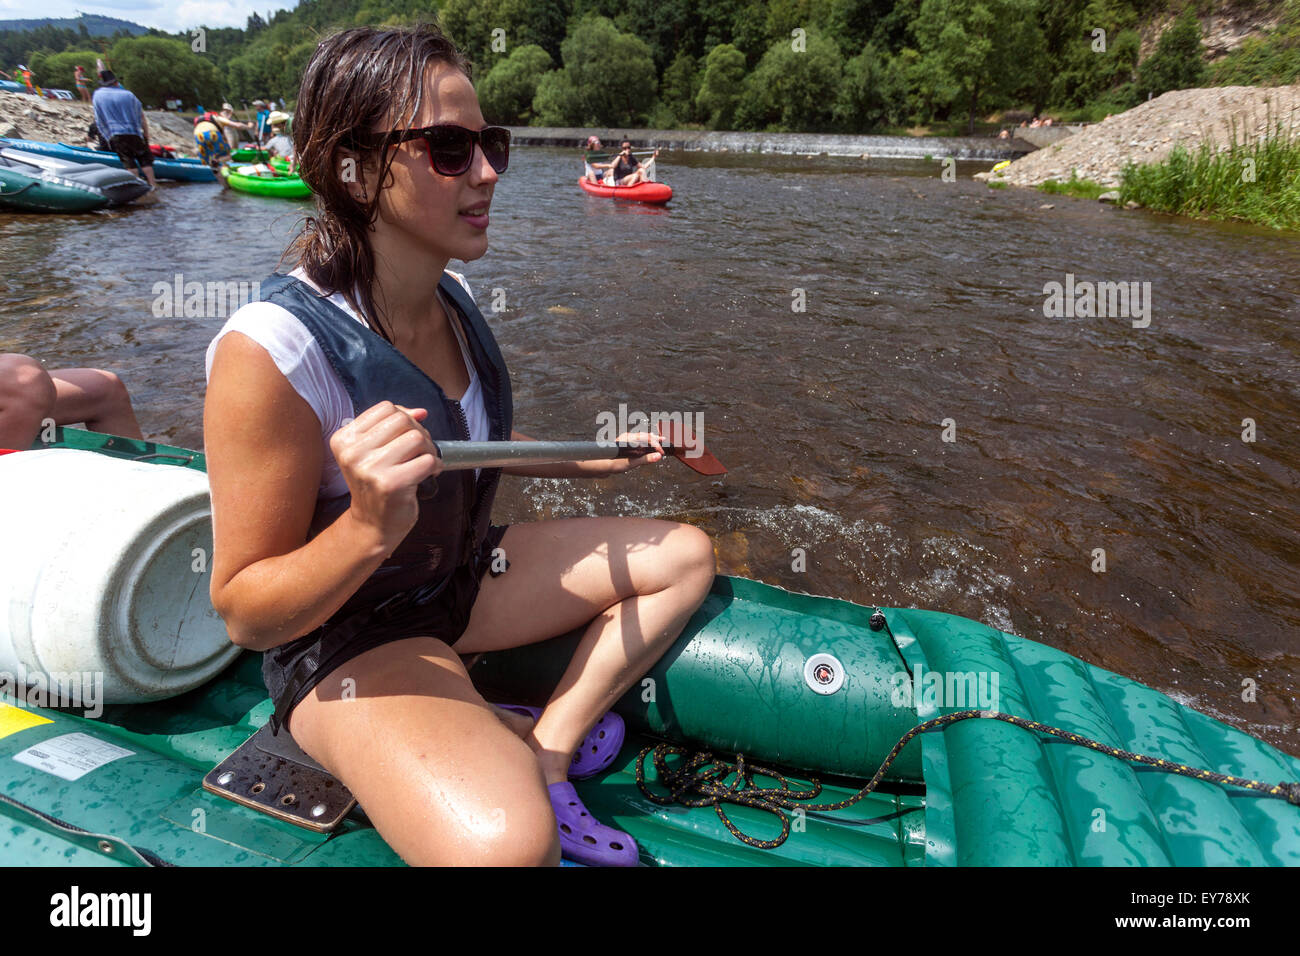 Going down by the river Vltava, girl rafting, South Bohemia, Czech Republic - Stock Image